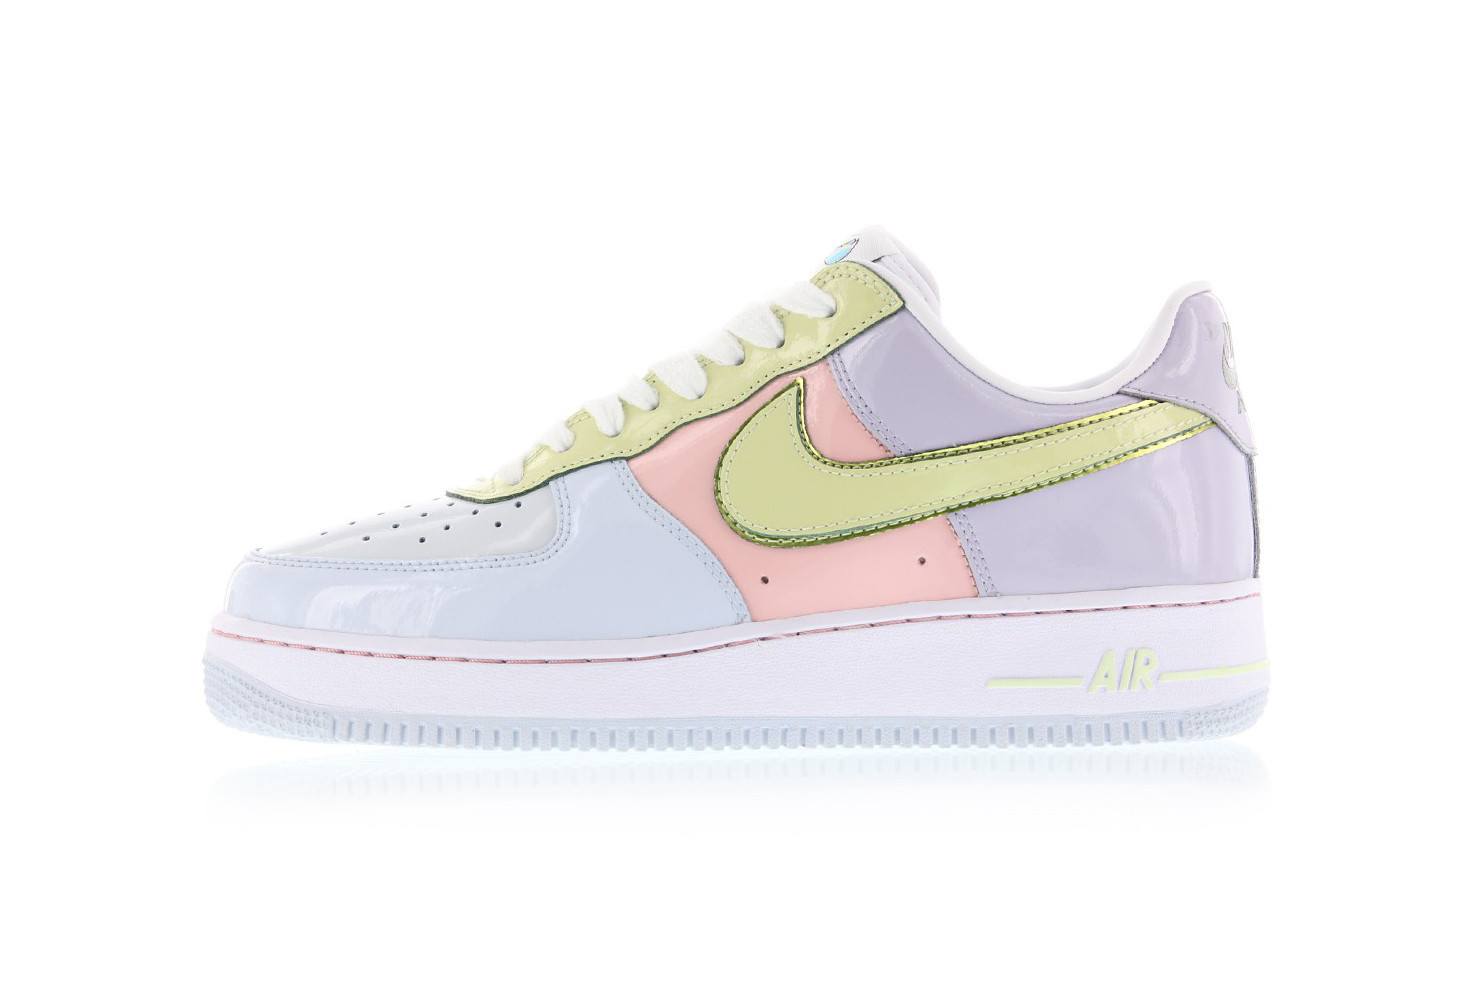 Nike Air Force 1 Low Easter Egg 2017 Re